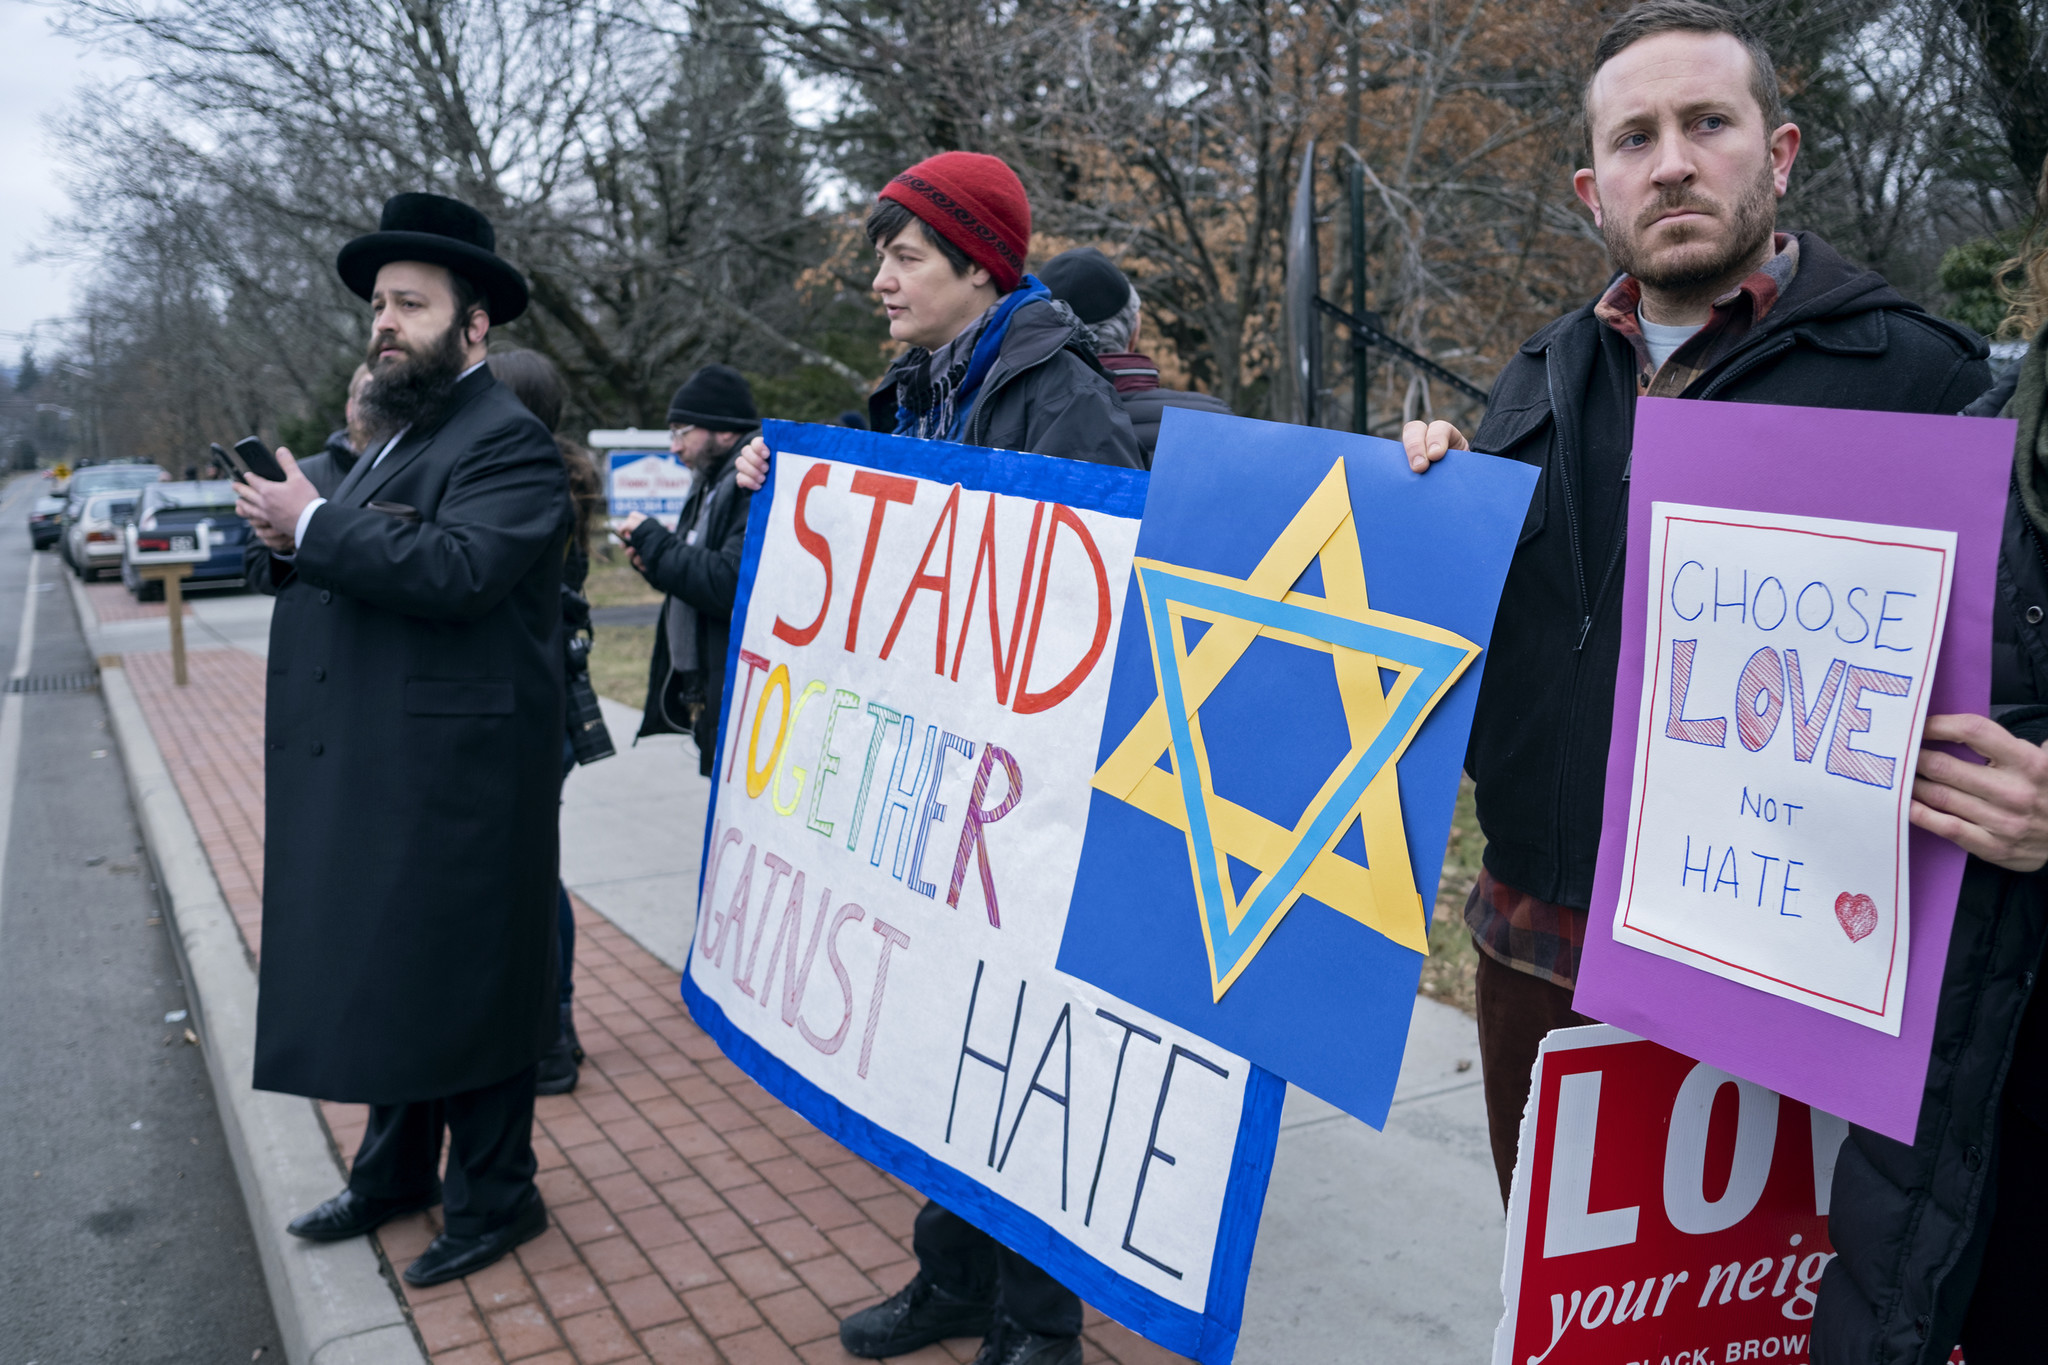 Higher education is one antidote to anti-Semitism